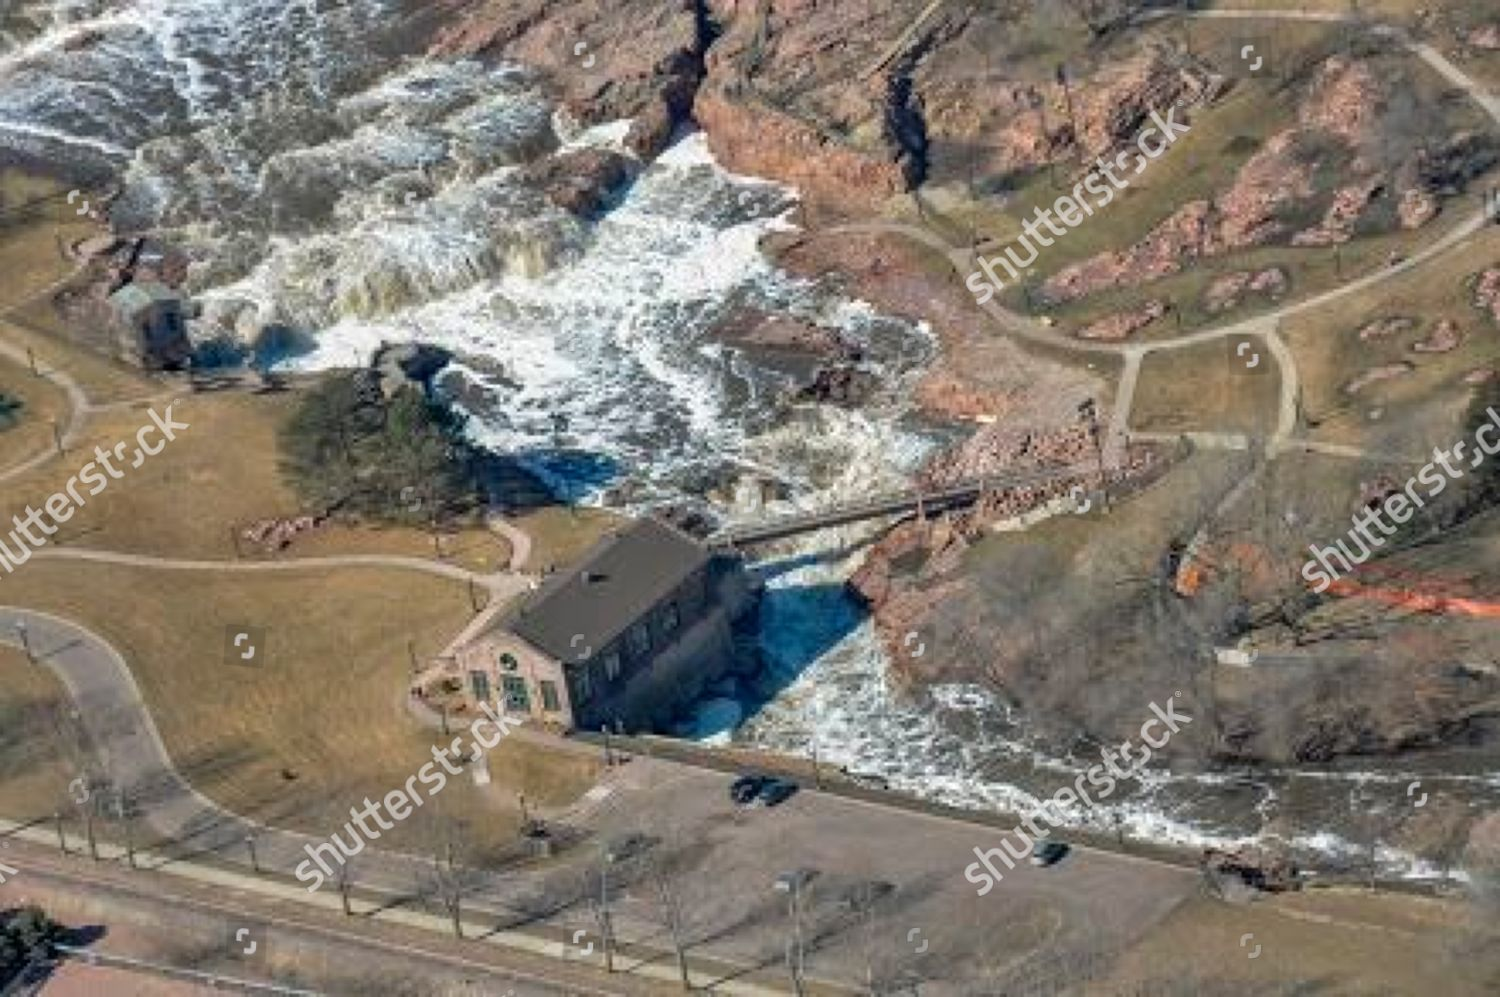 James River overflows banks on Sioux Falls Editorial Stock